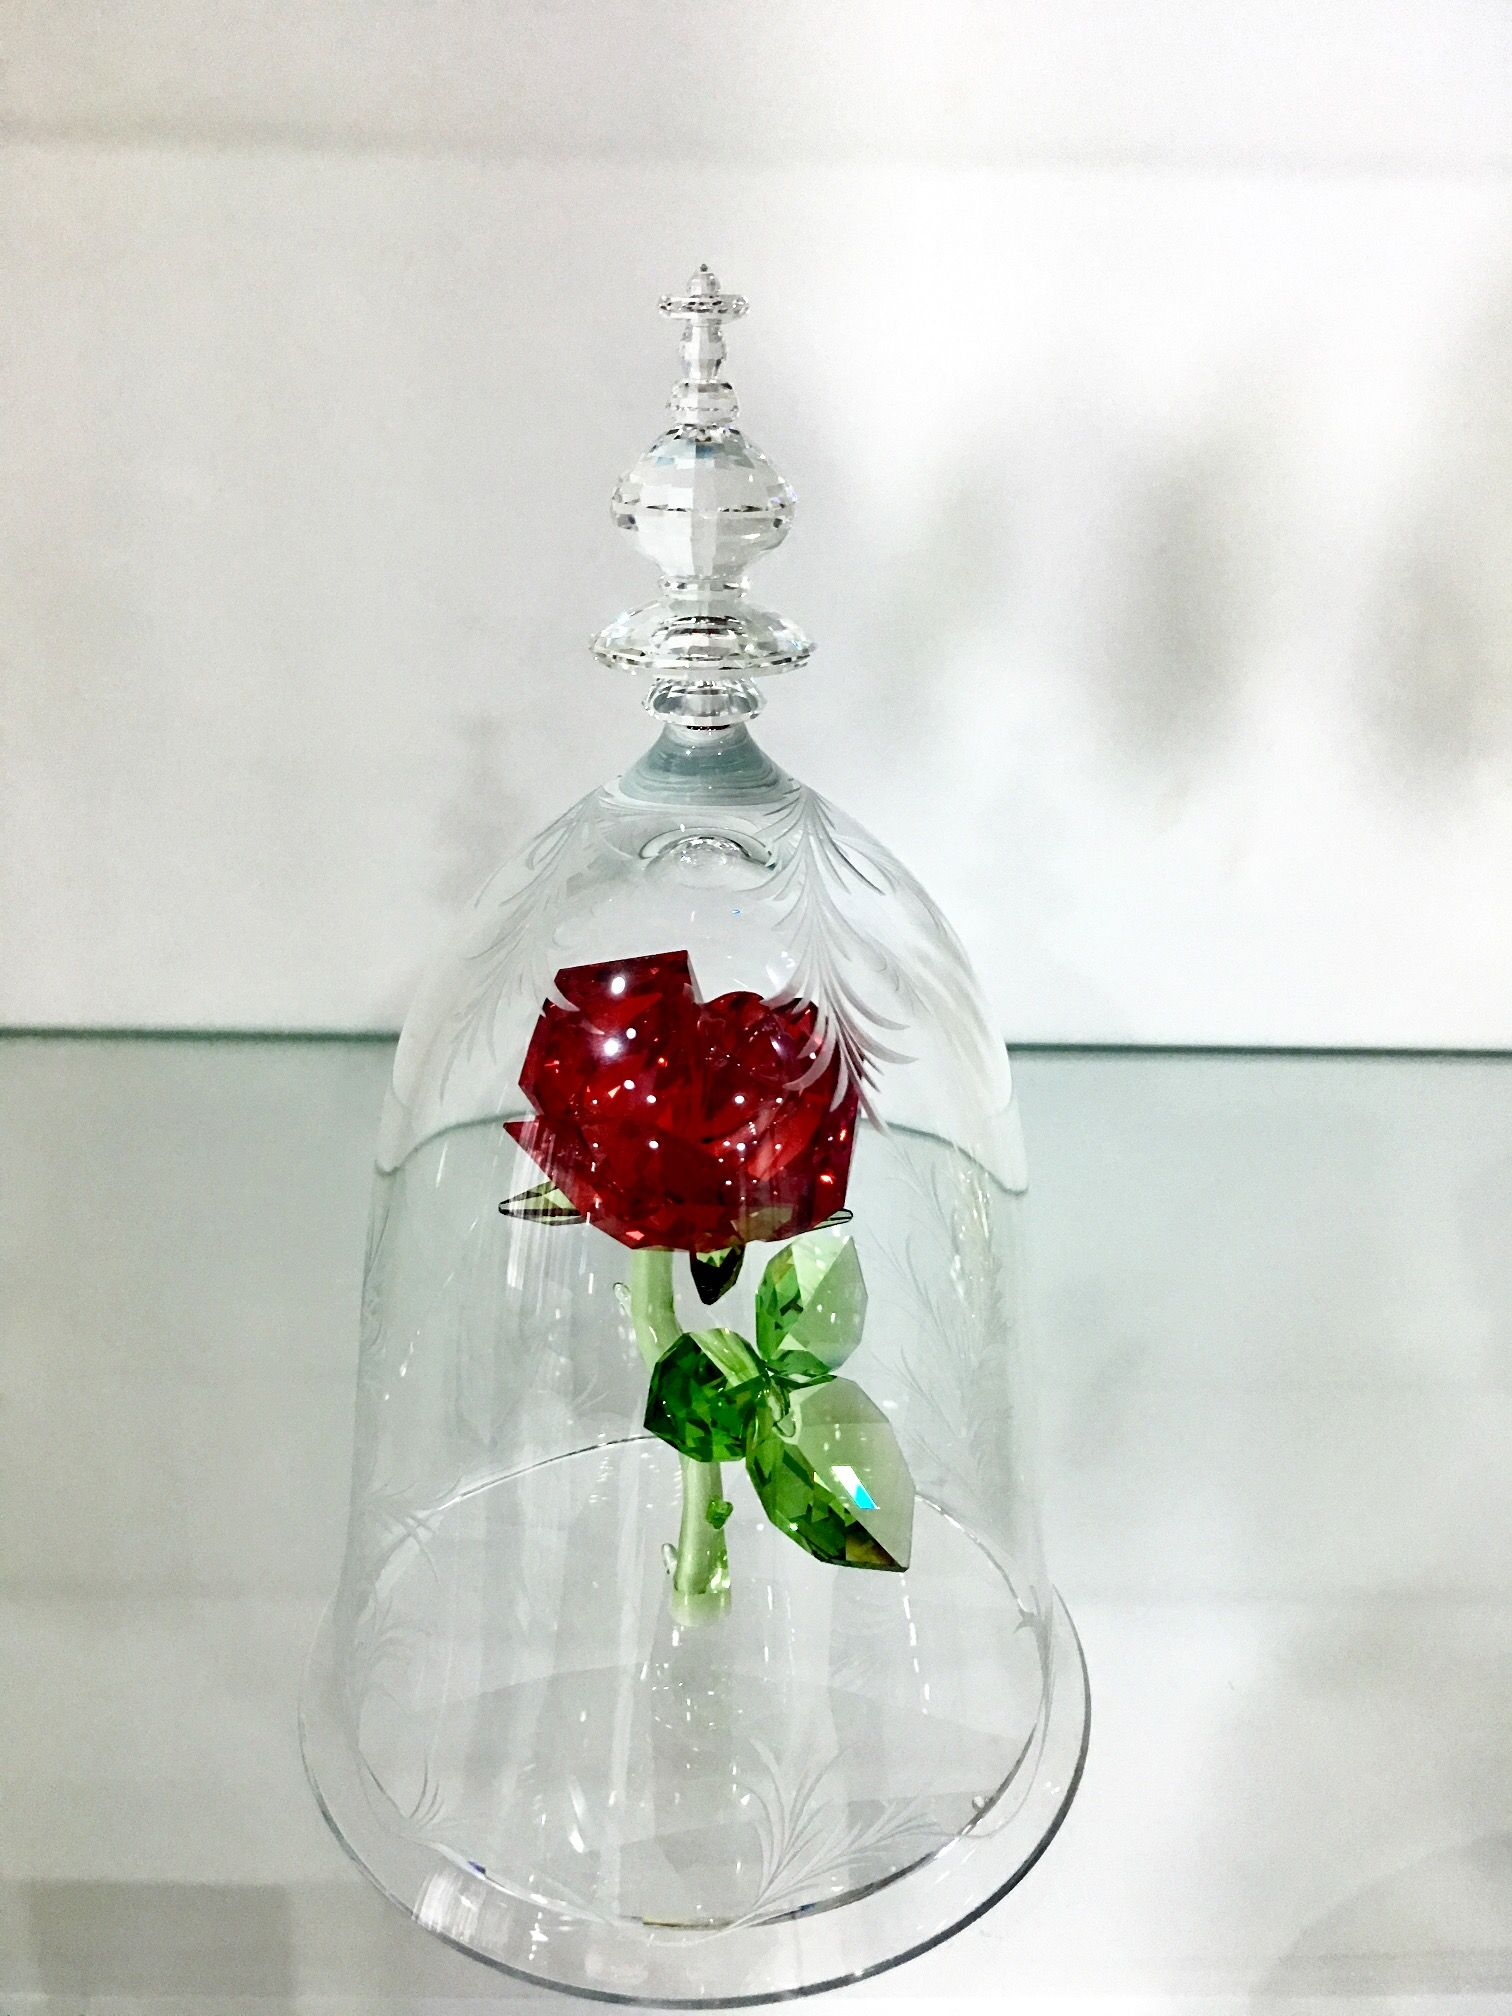 d26e2eec9 Swarovski Crystal. Beauty and The Beast. Enchanted Roses. Limited Edition  2017(350 pieces). KOS home